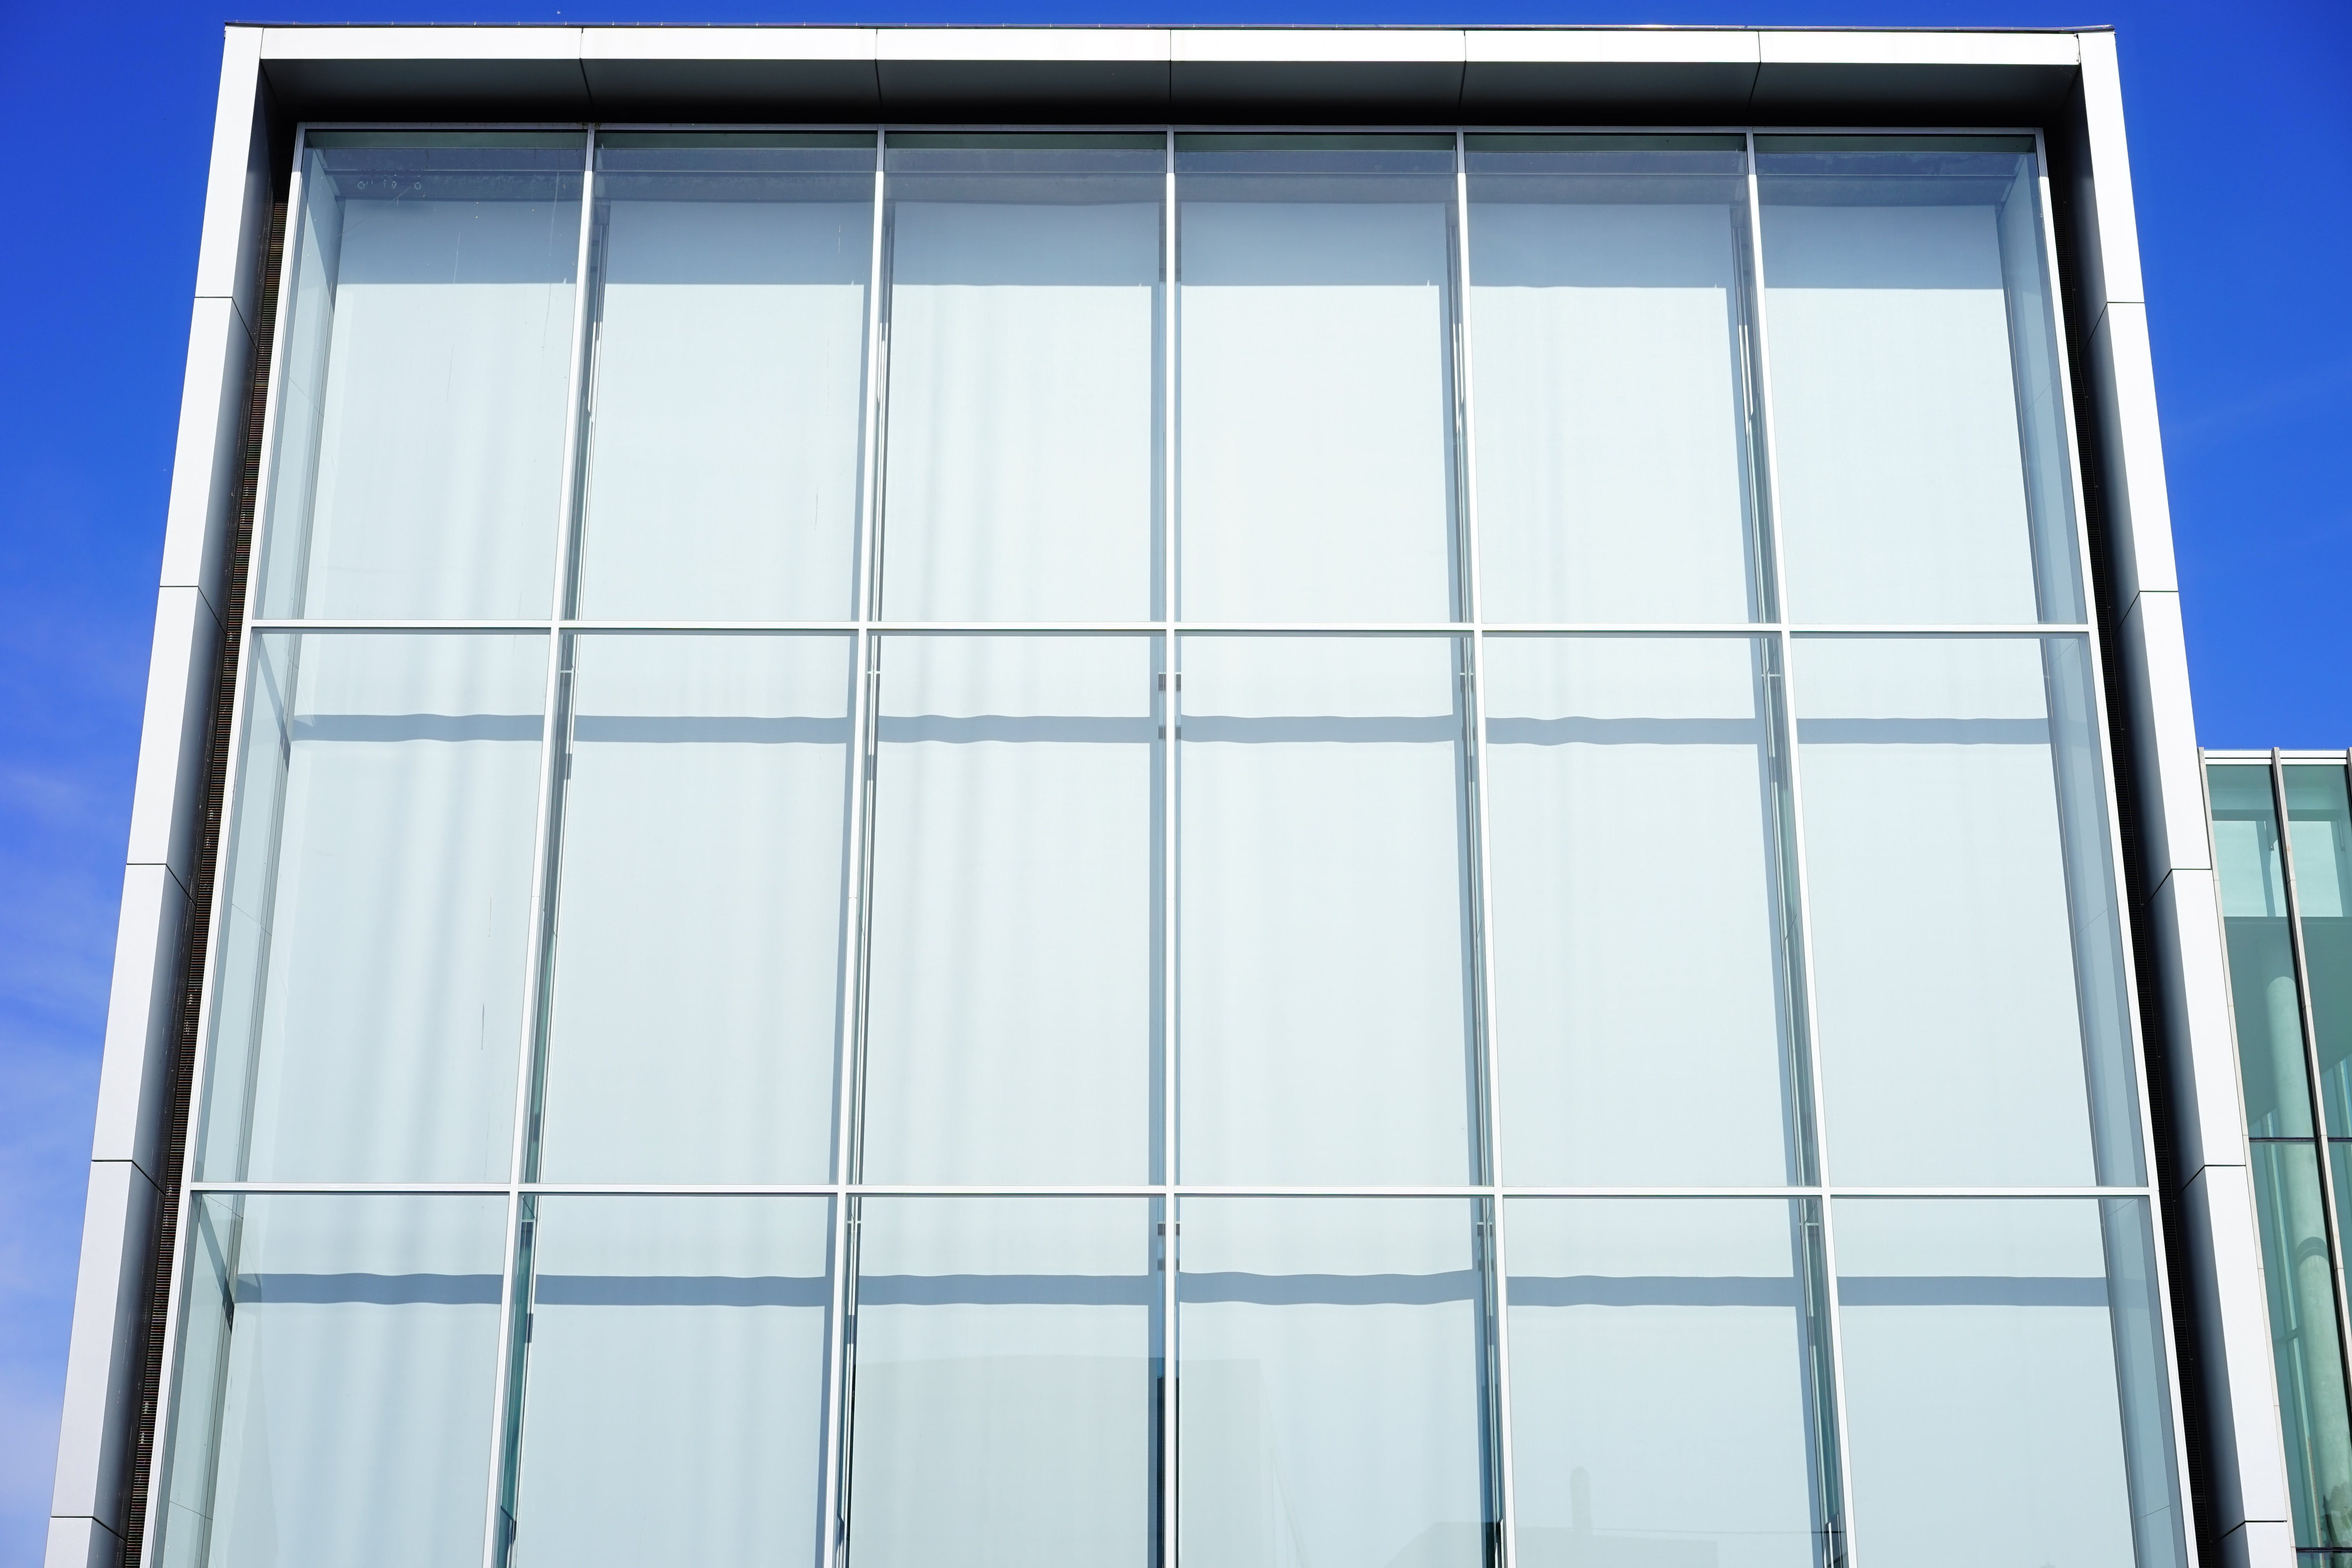 Free stock photo of building, glass, architecture, window